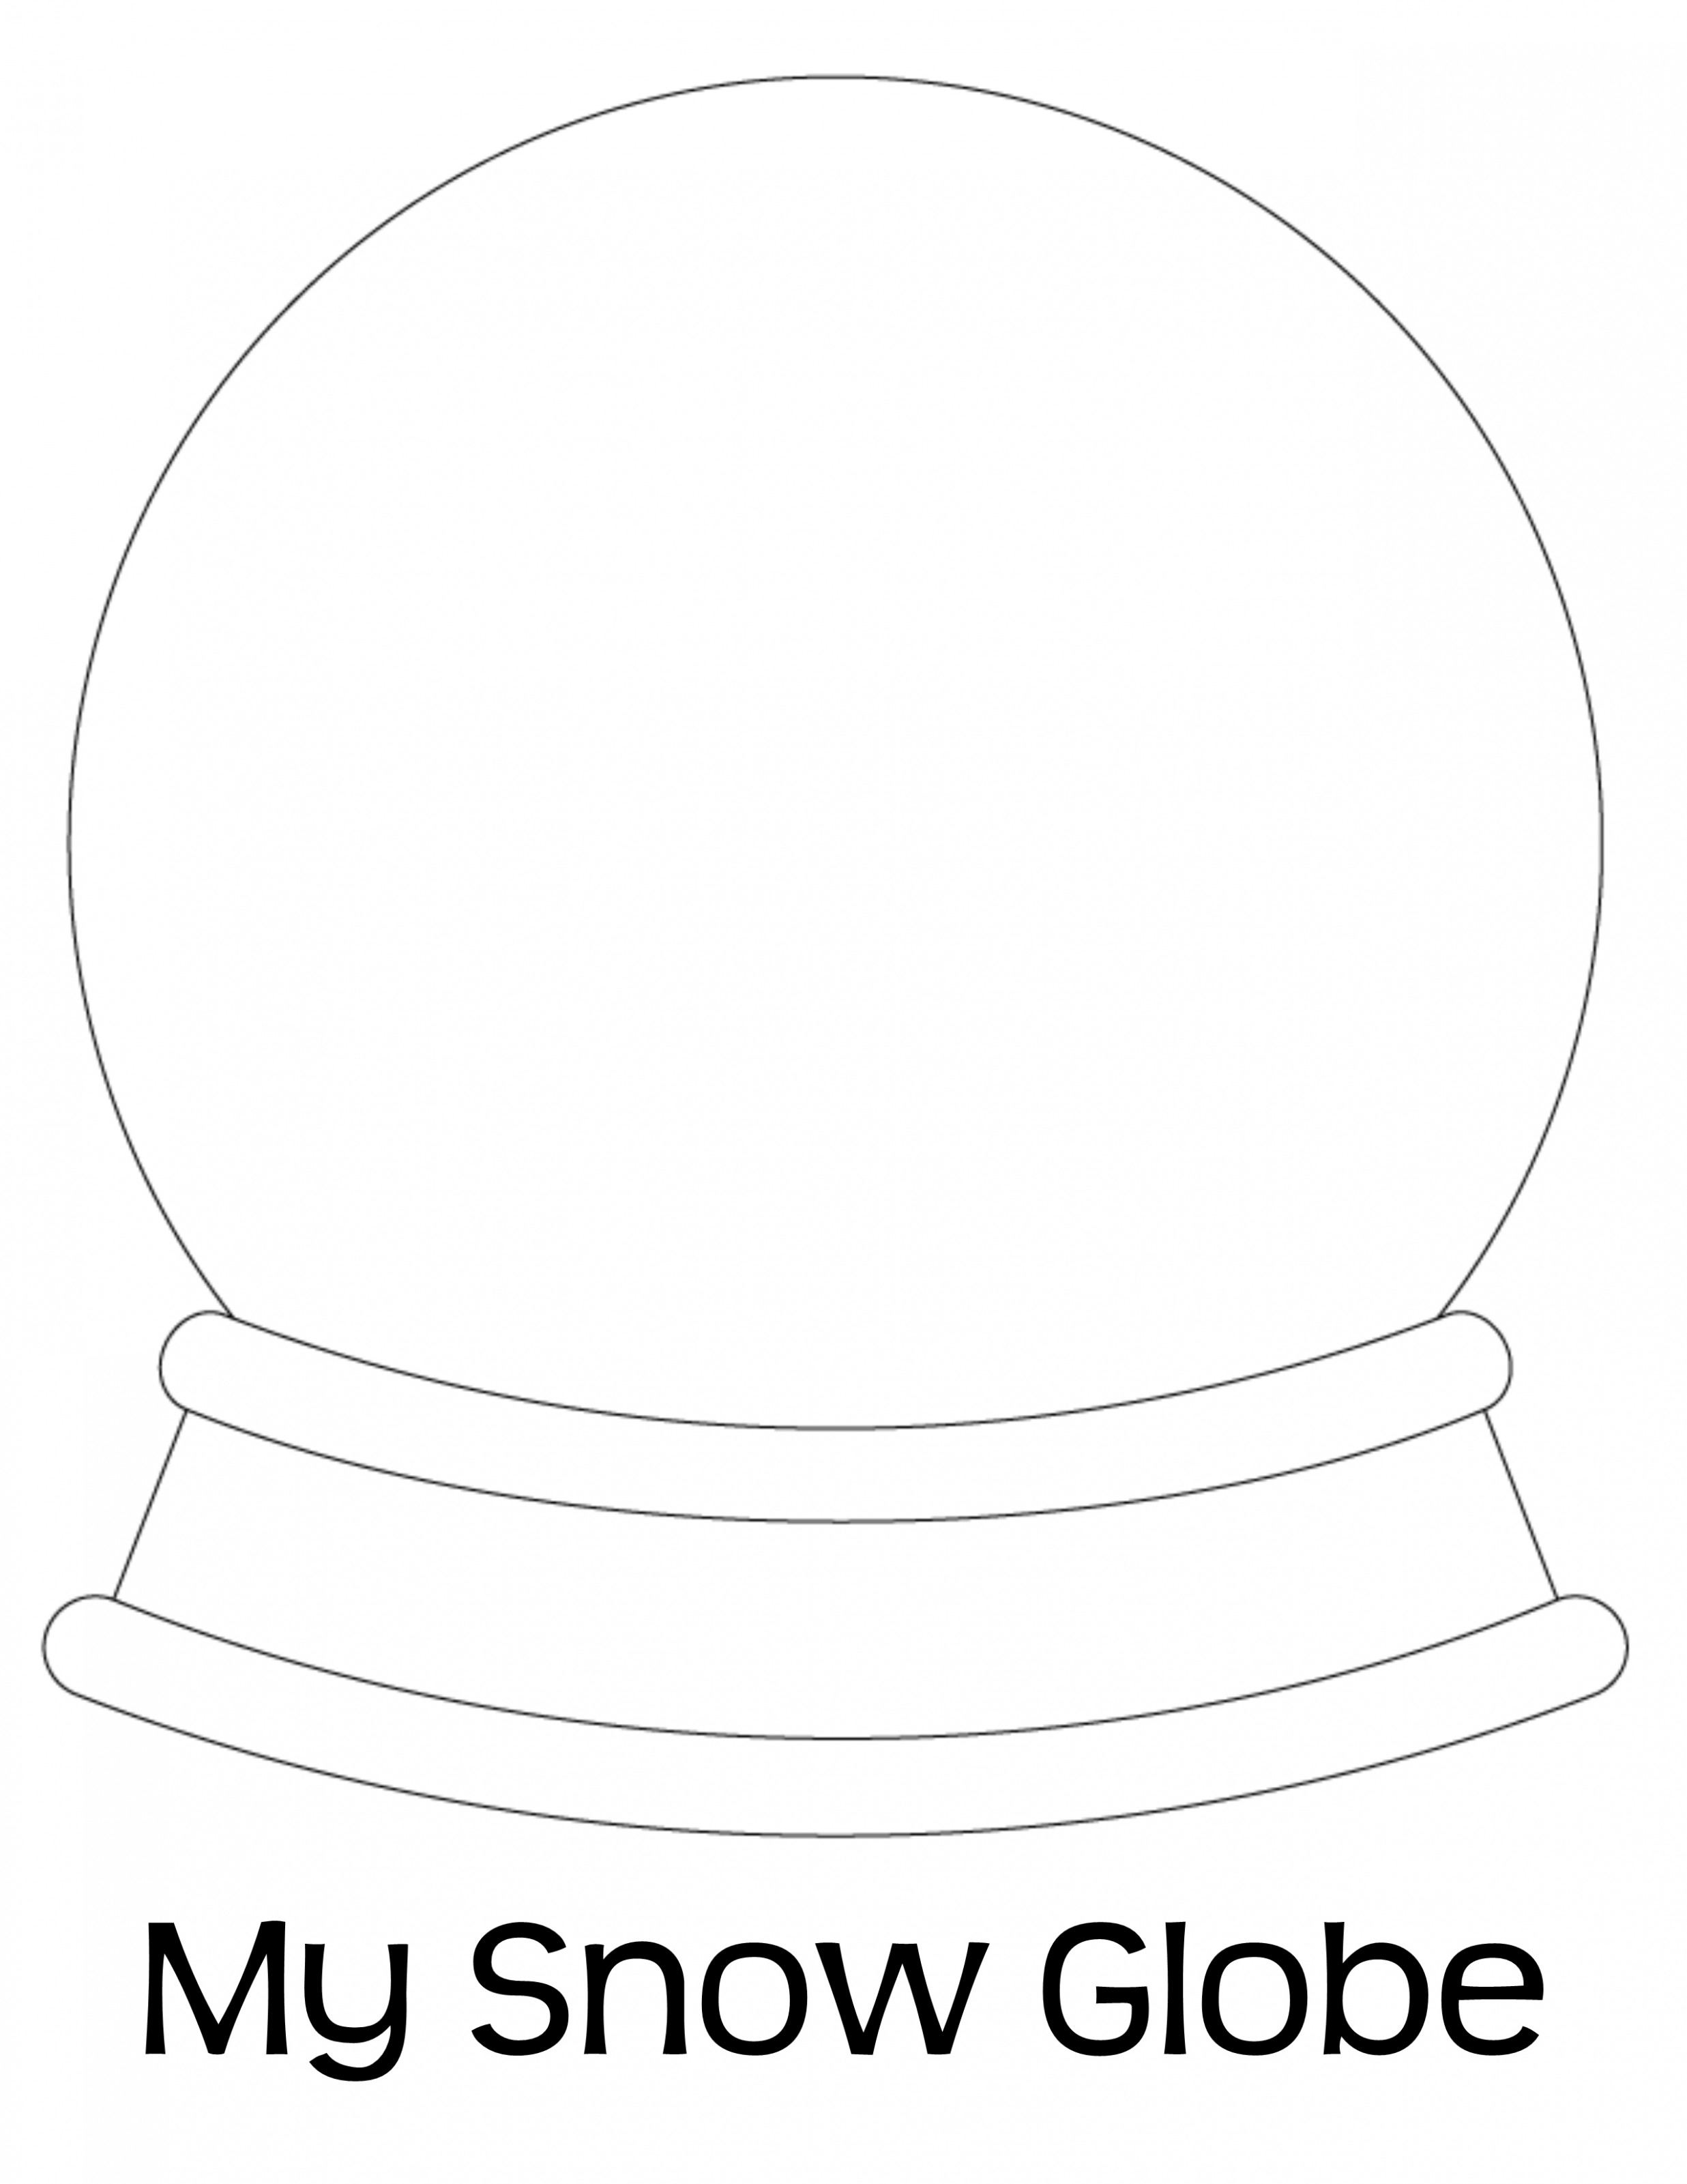 Empty Snow Globe Coloring Page Coloring Pages, Globe Coloring Page ...